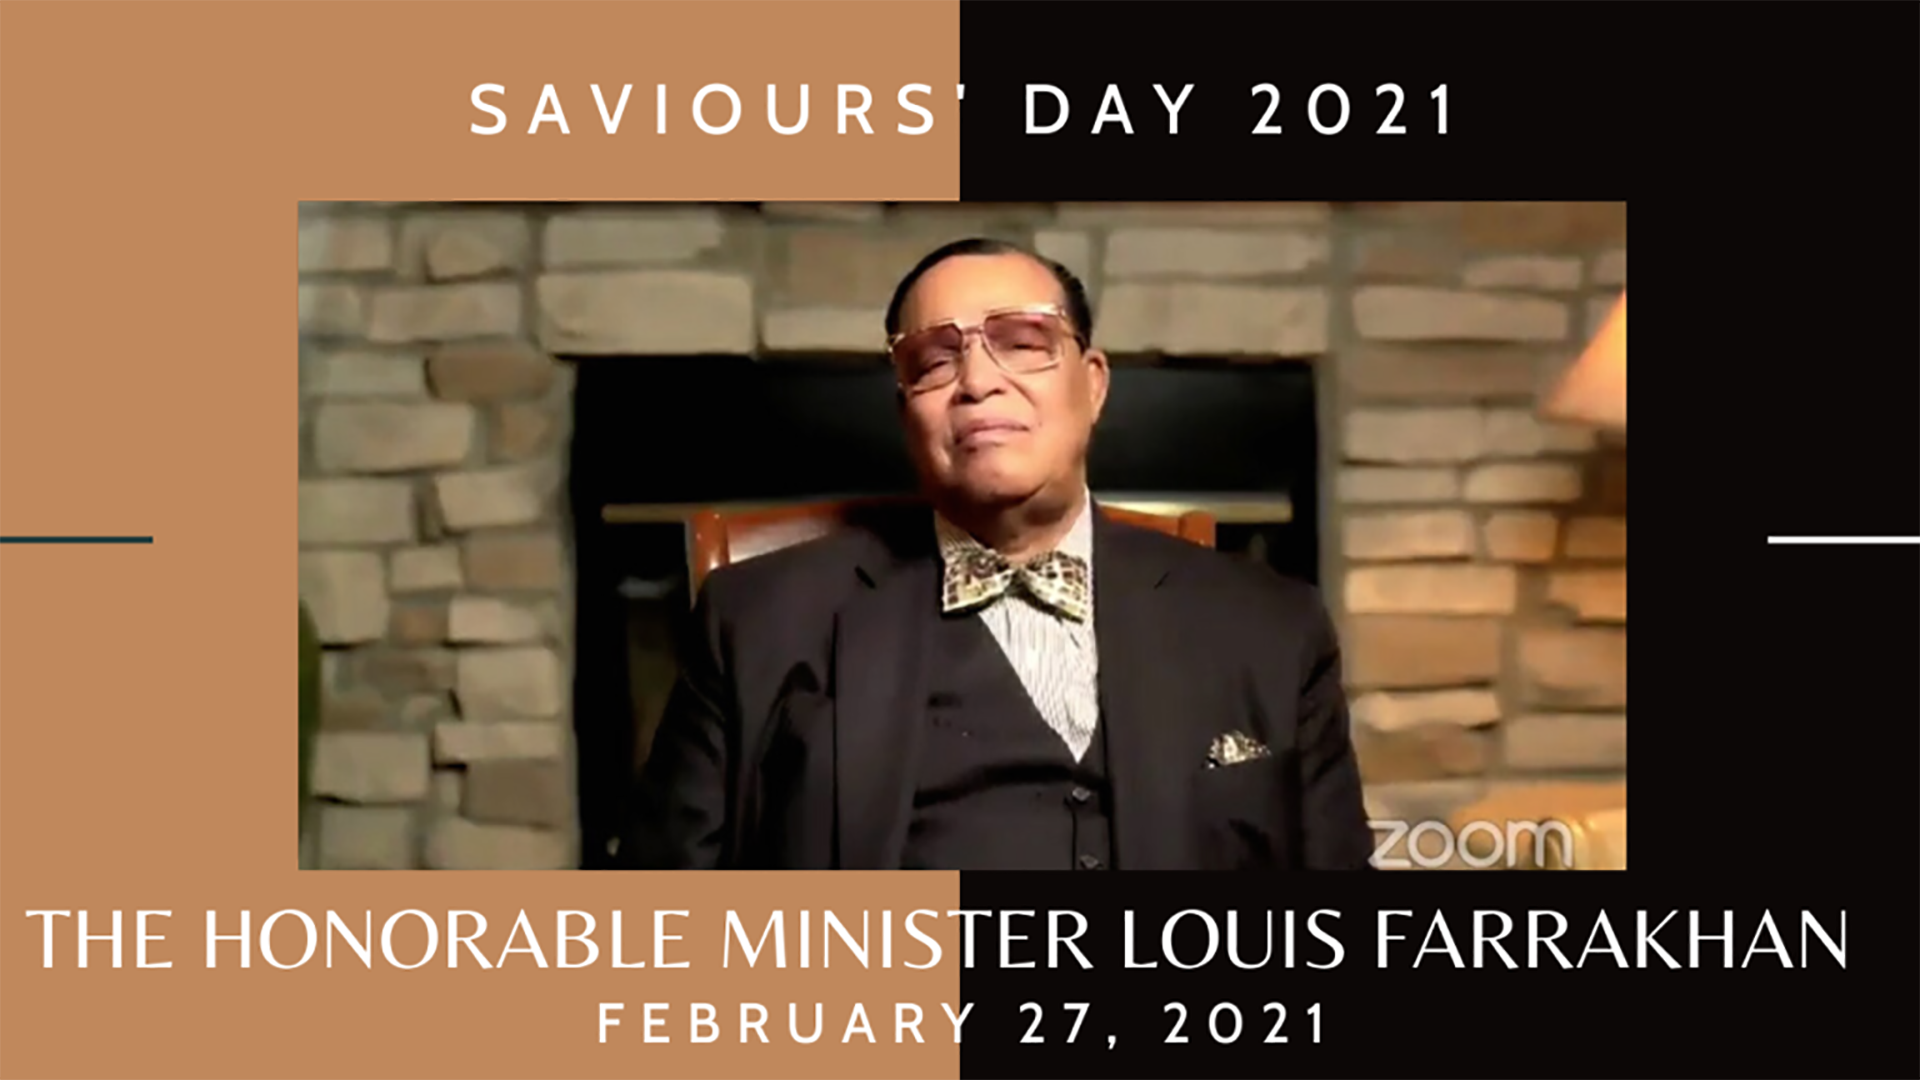 Minister Farrakhan Speaks at Saviours' Day 2021 COVID Vaccine Town Hall